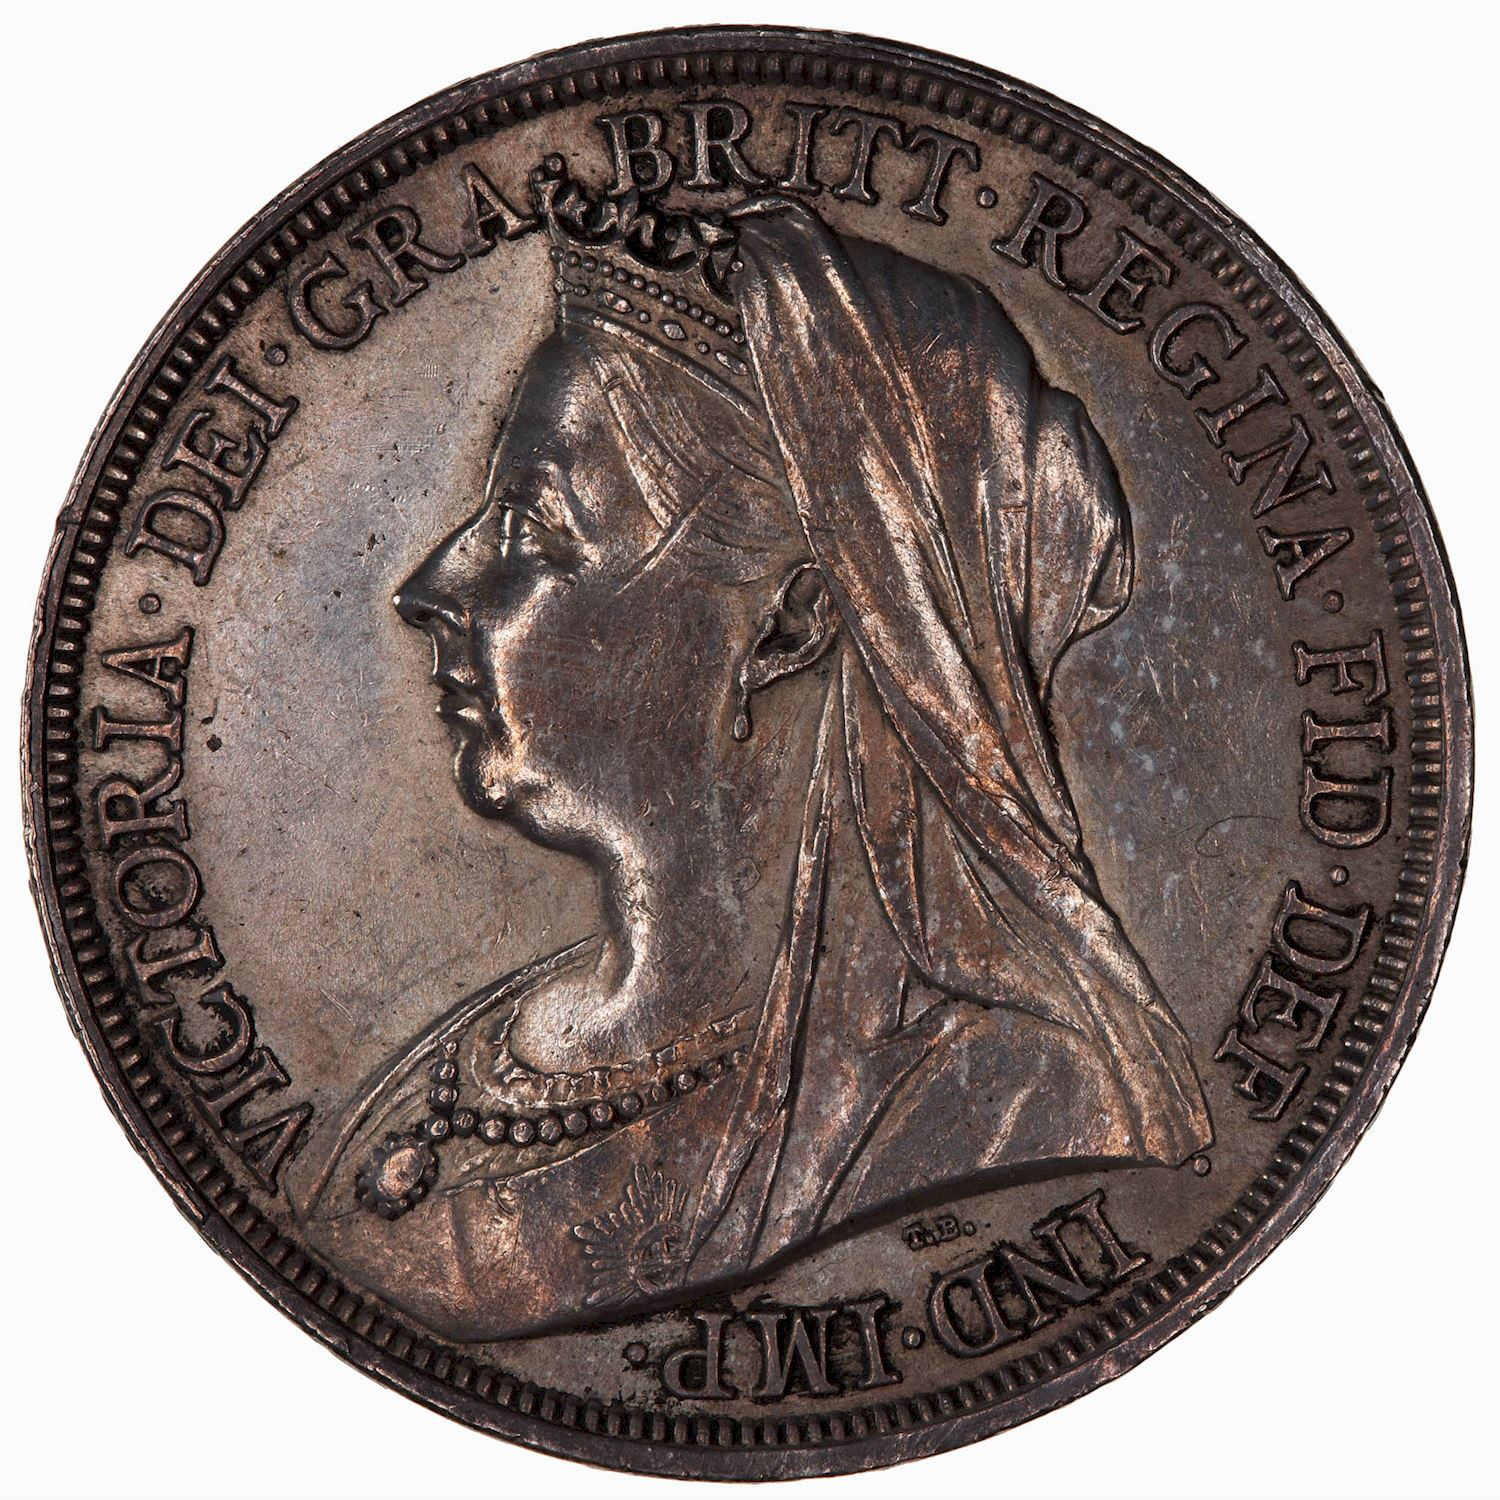 Crown (St George): Photo Coin - Crown, Queen Victoria, Great Britain, 1897